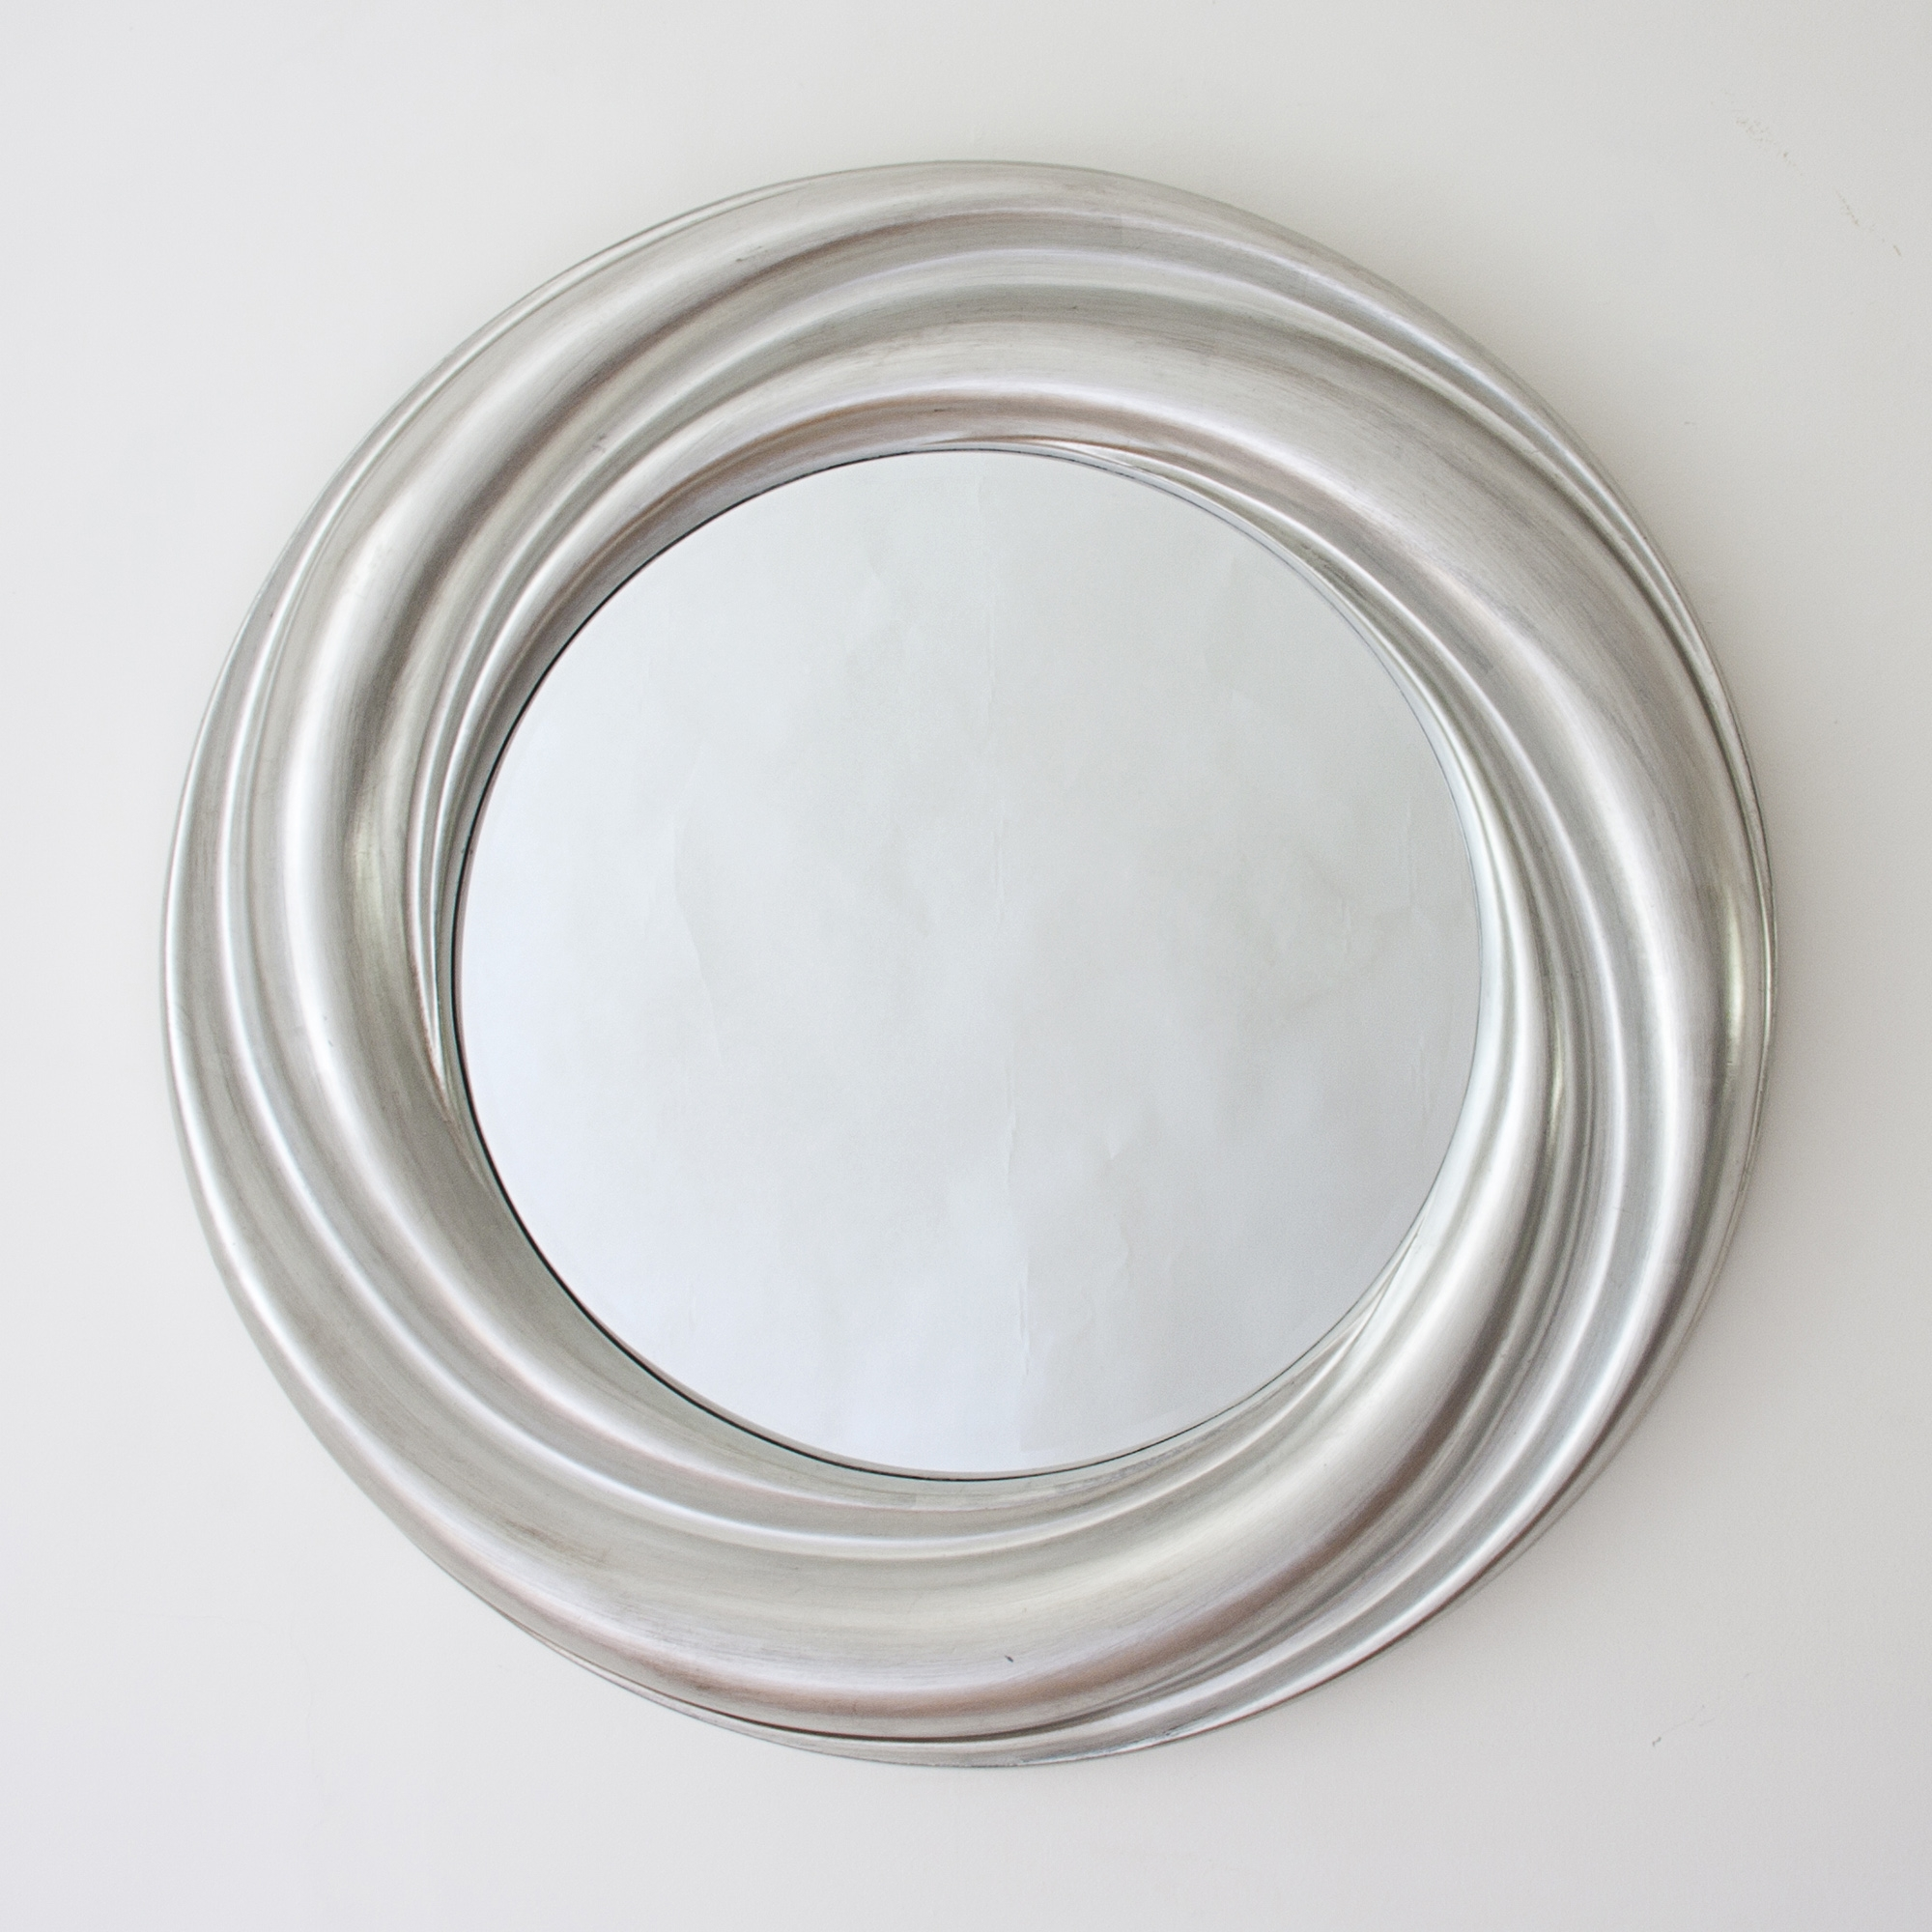 Bathroom Round Silver Mirror Pictures Decorations Inspiration Within Round Contemporary Mirror (Image 2 of 15)